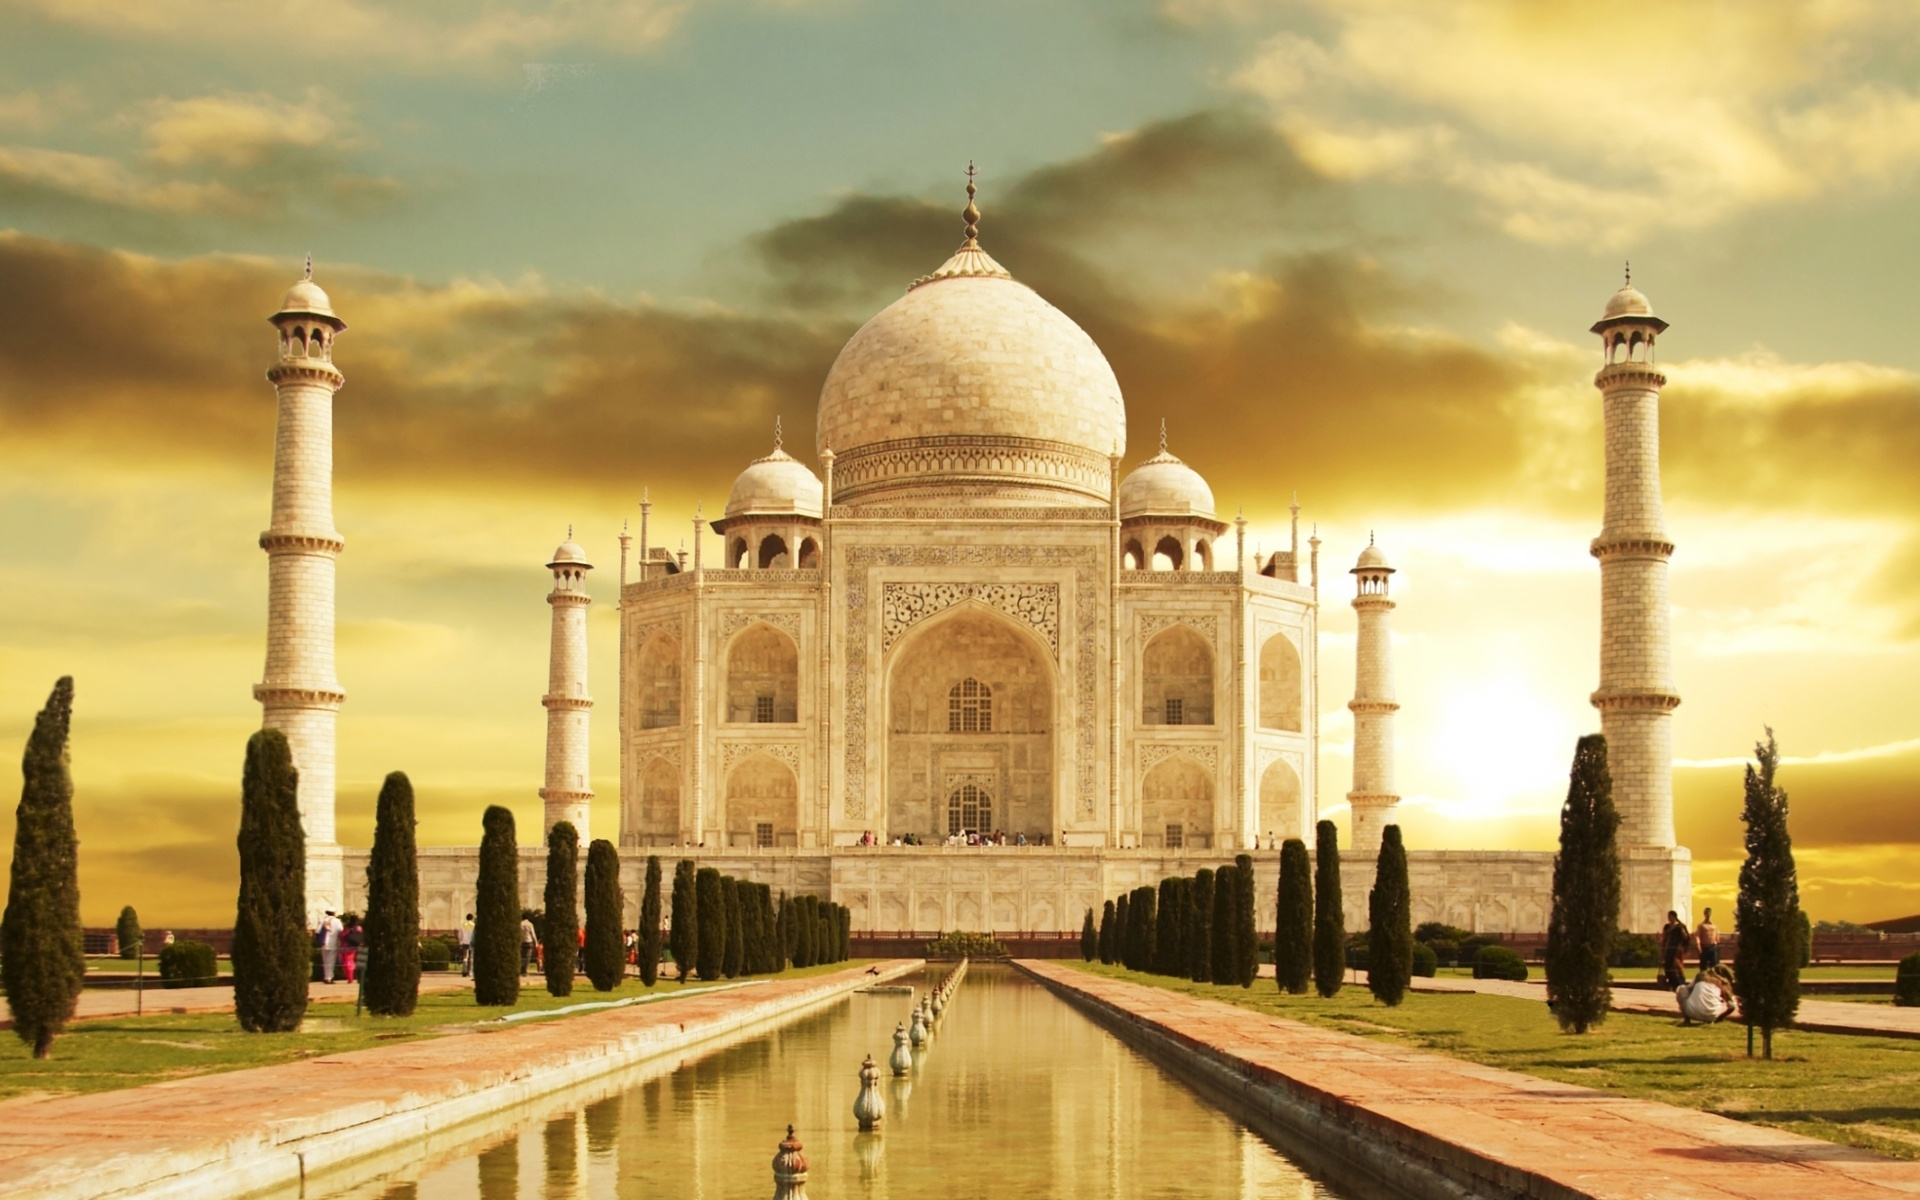 Taj Mahal India Wallpaper 5 HD Desktop Wallpapers 1920x1200